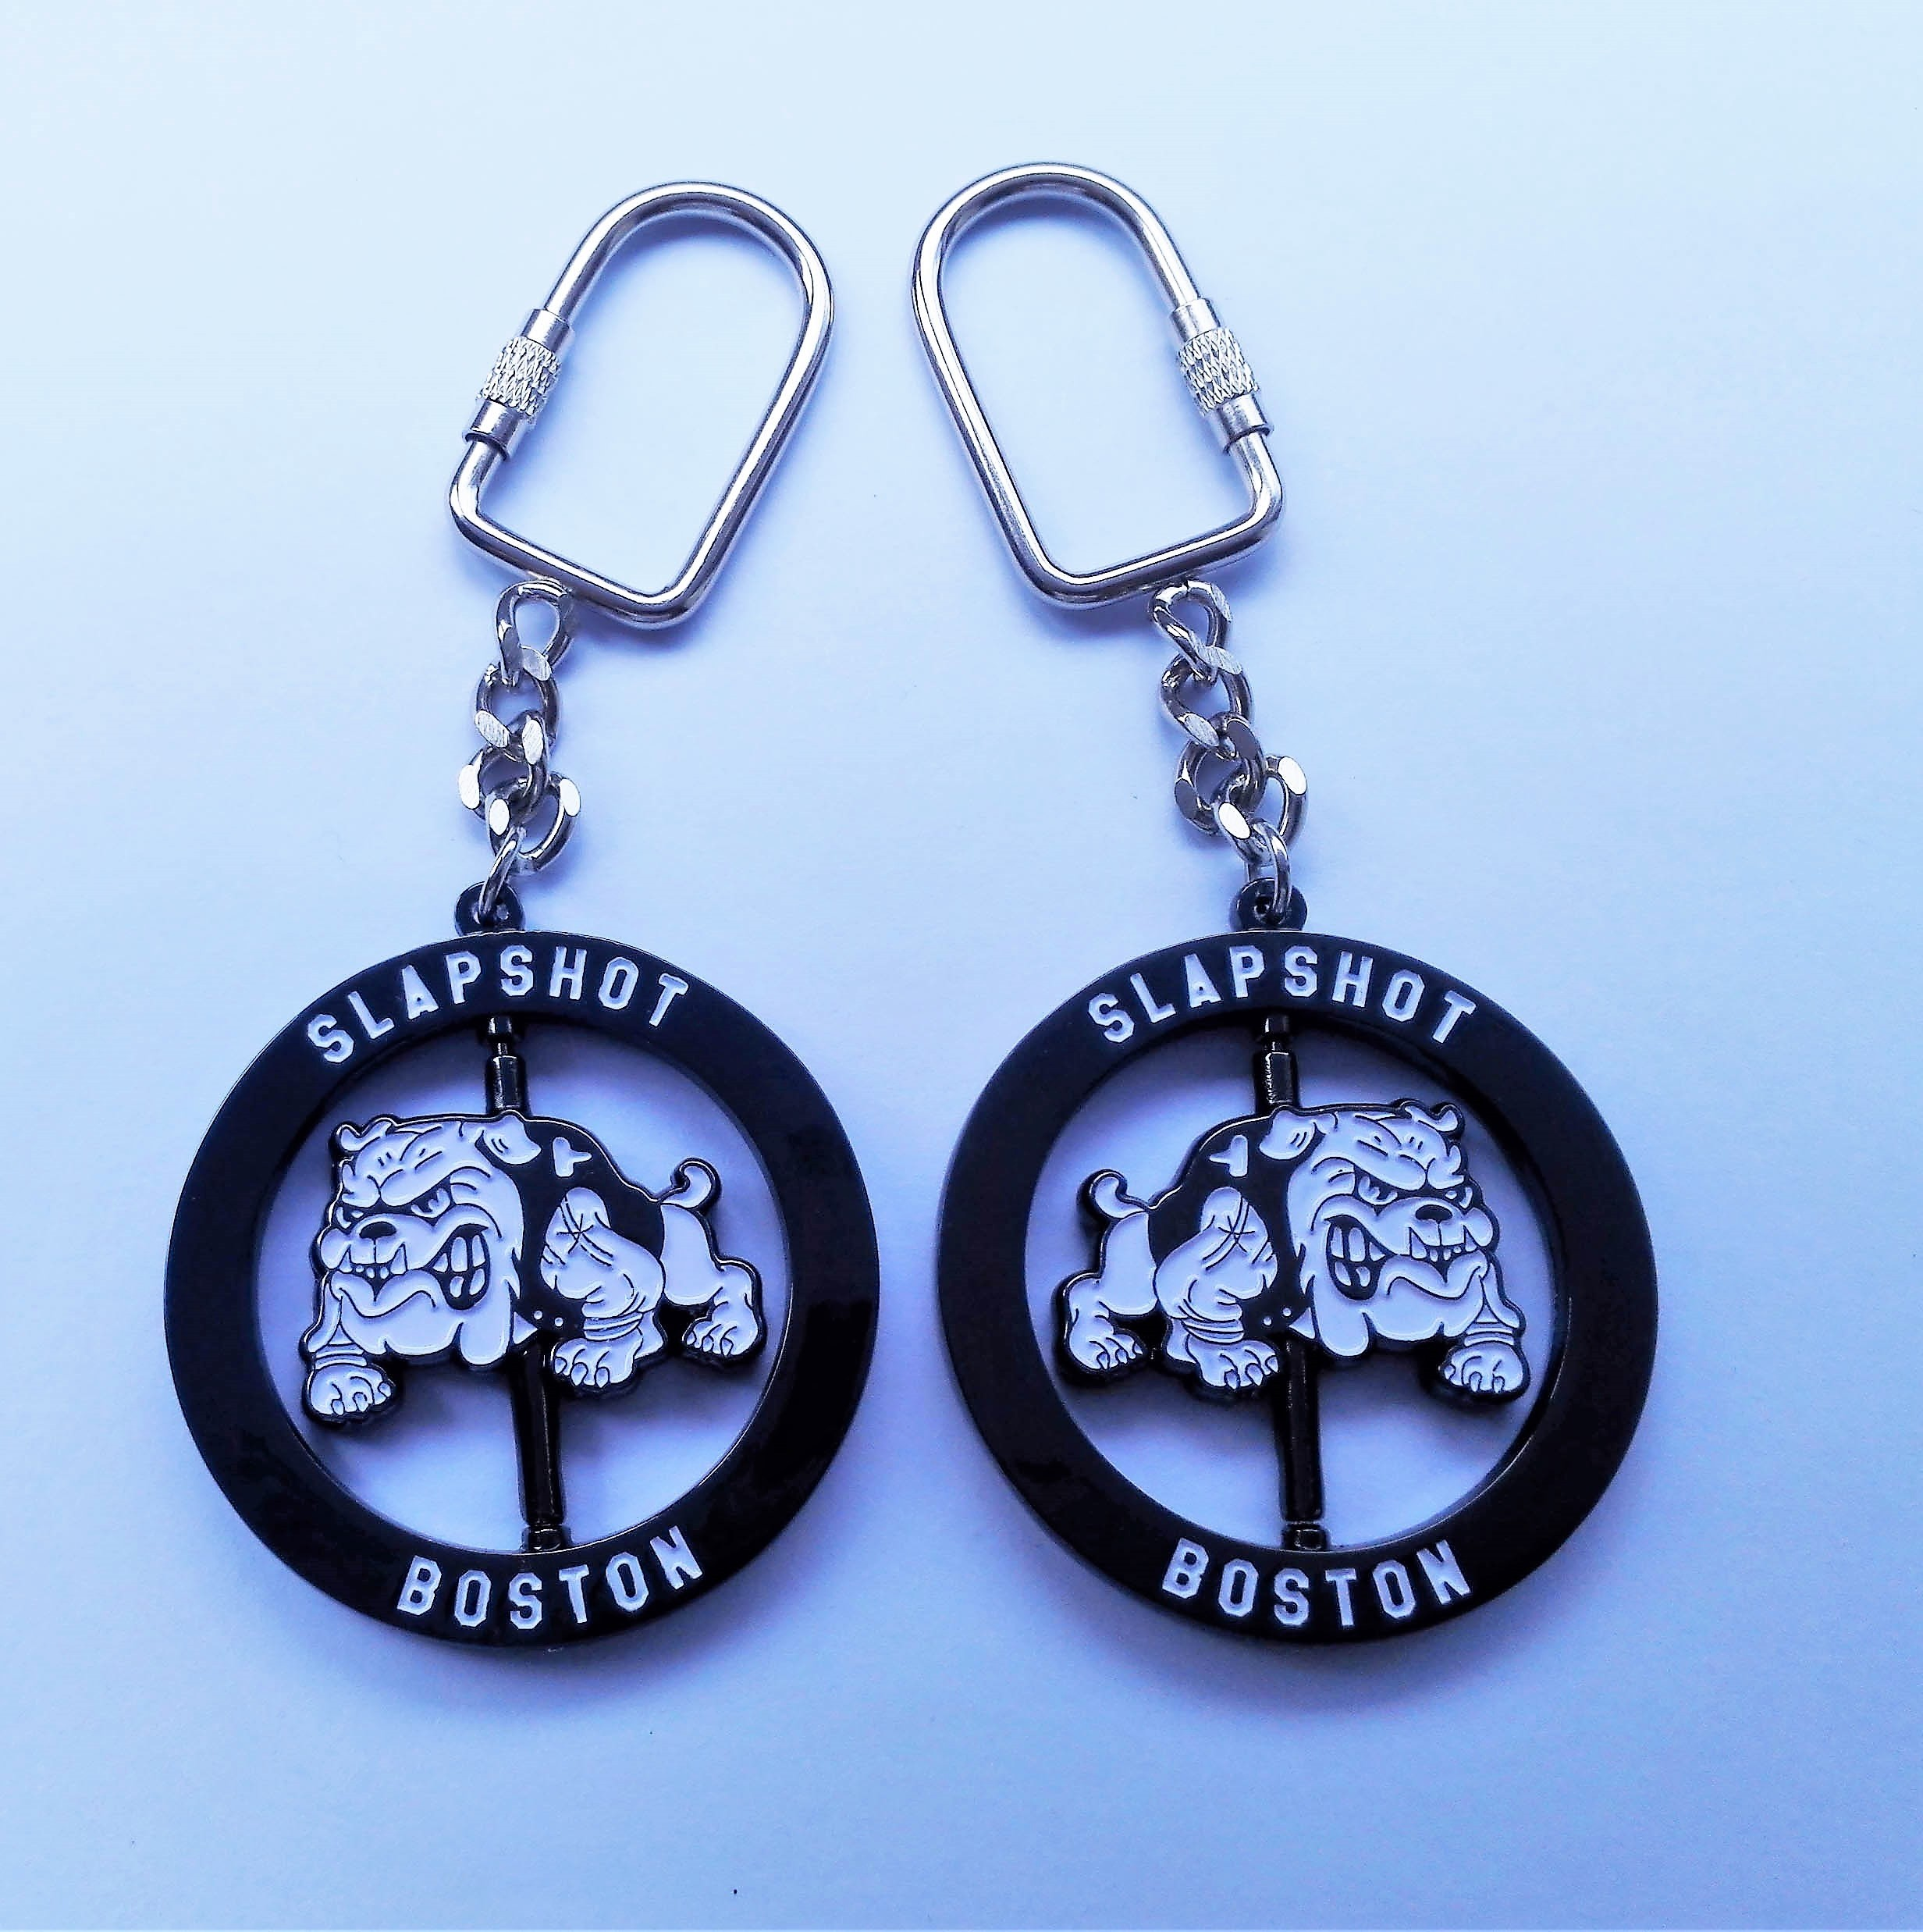 Slapshot - Boston Bulldog - spinning keychain